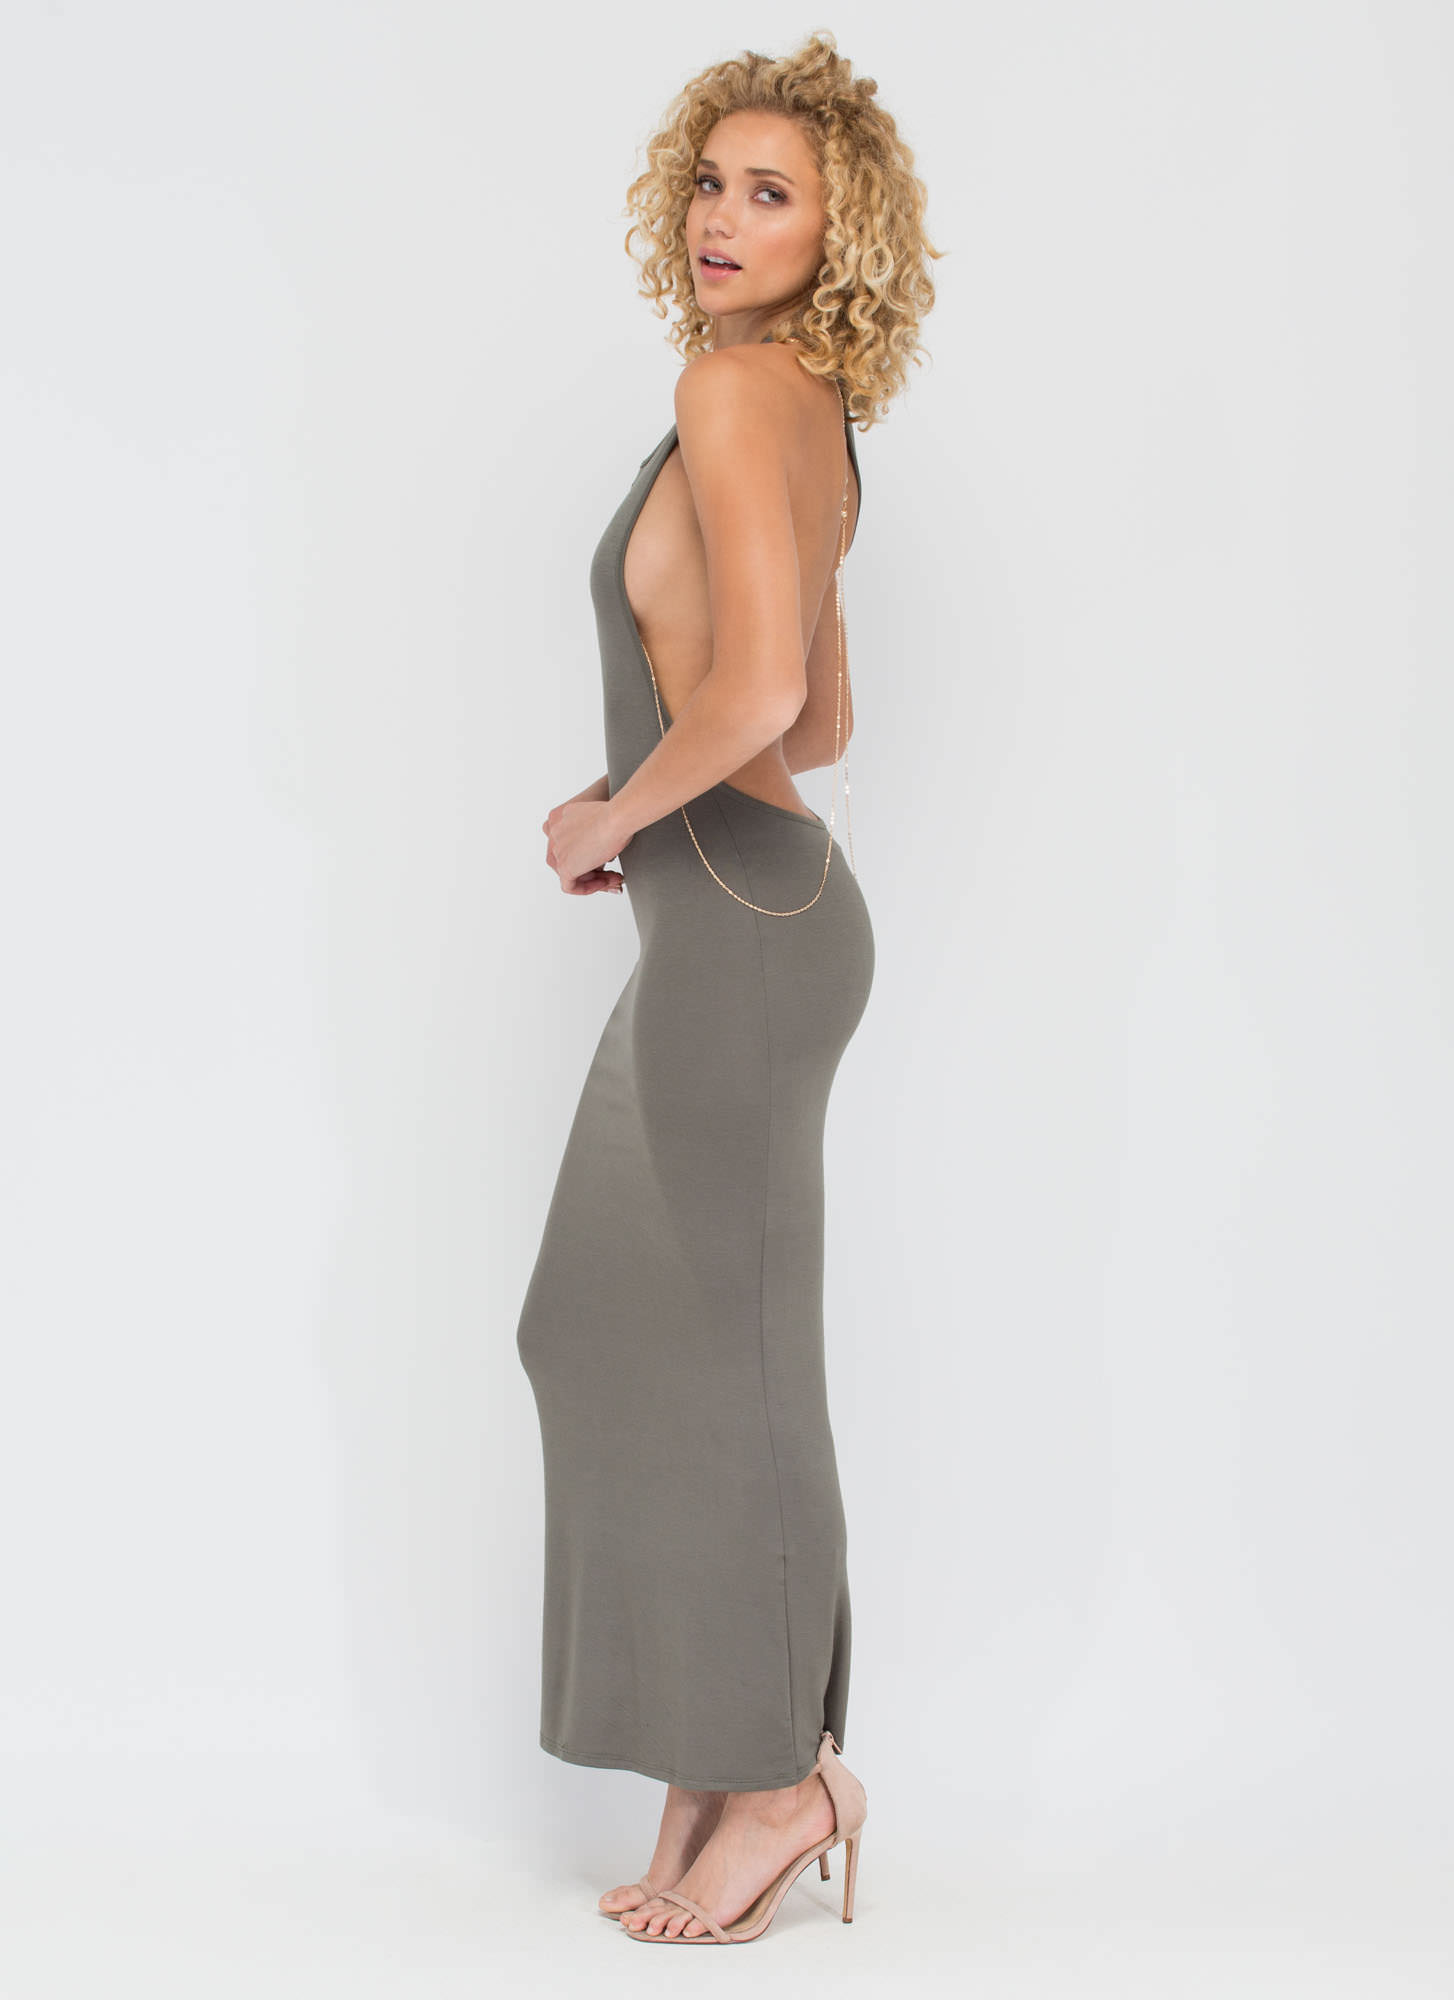 Go Halfsies Open Back Maxi Dress OLIVE (Final Sale)